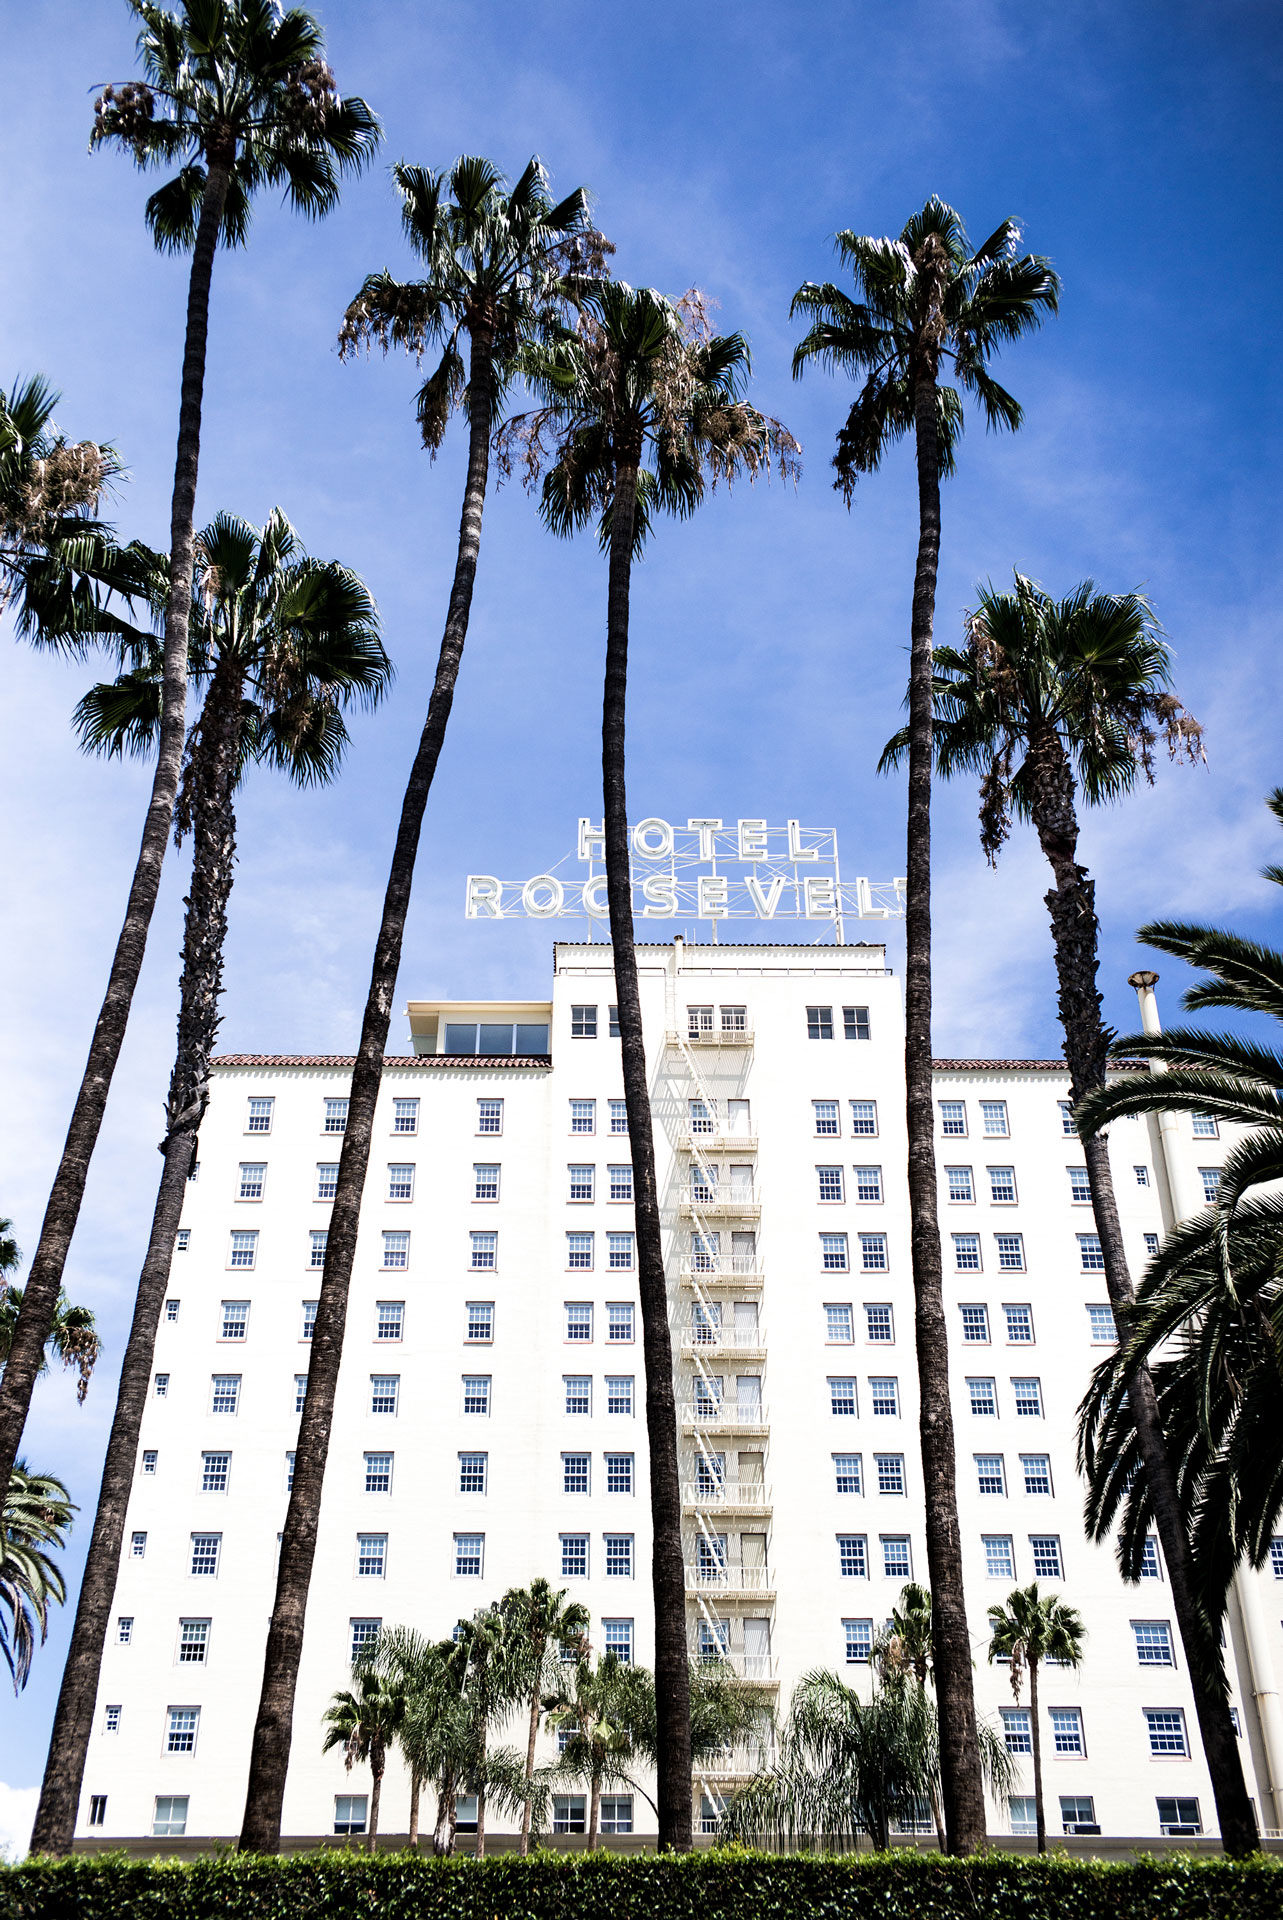 Vulture Festival Is Coming To The Hollywood Roosevelt This